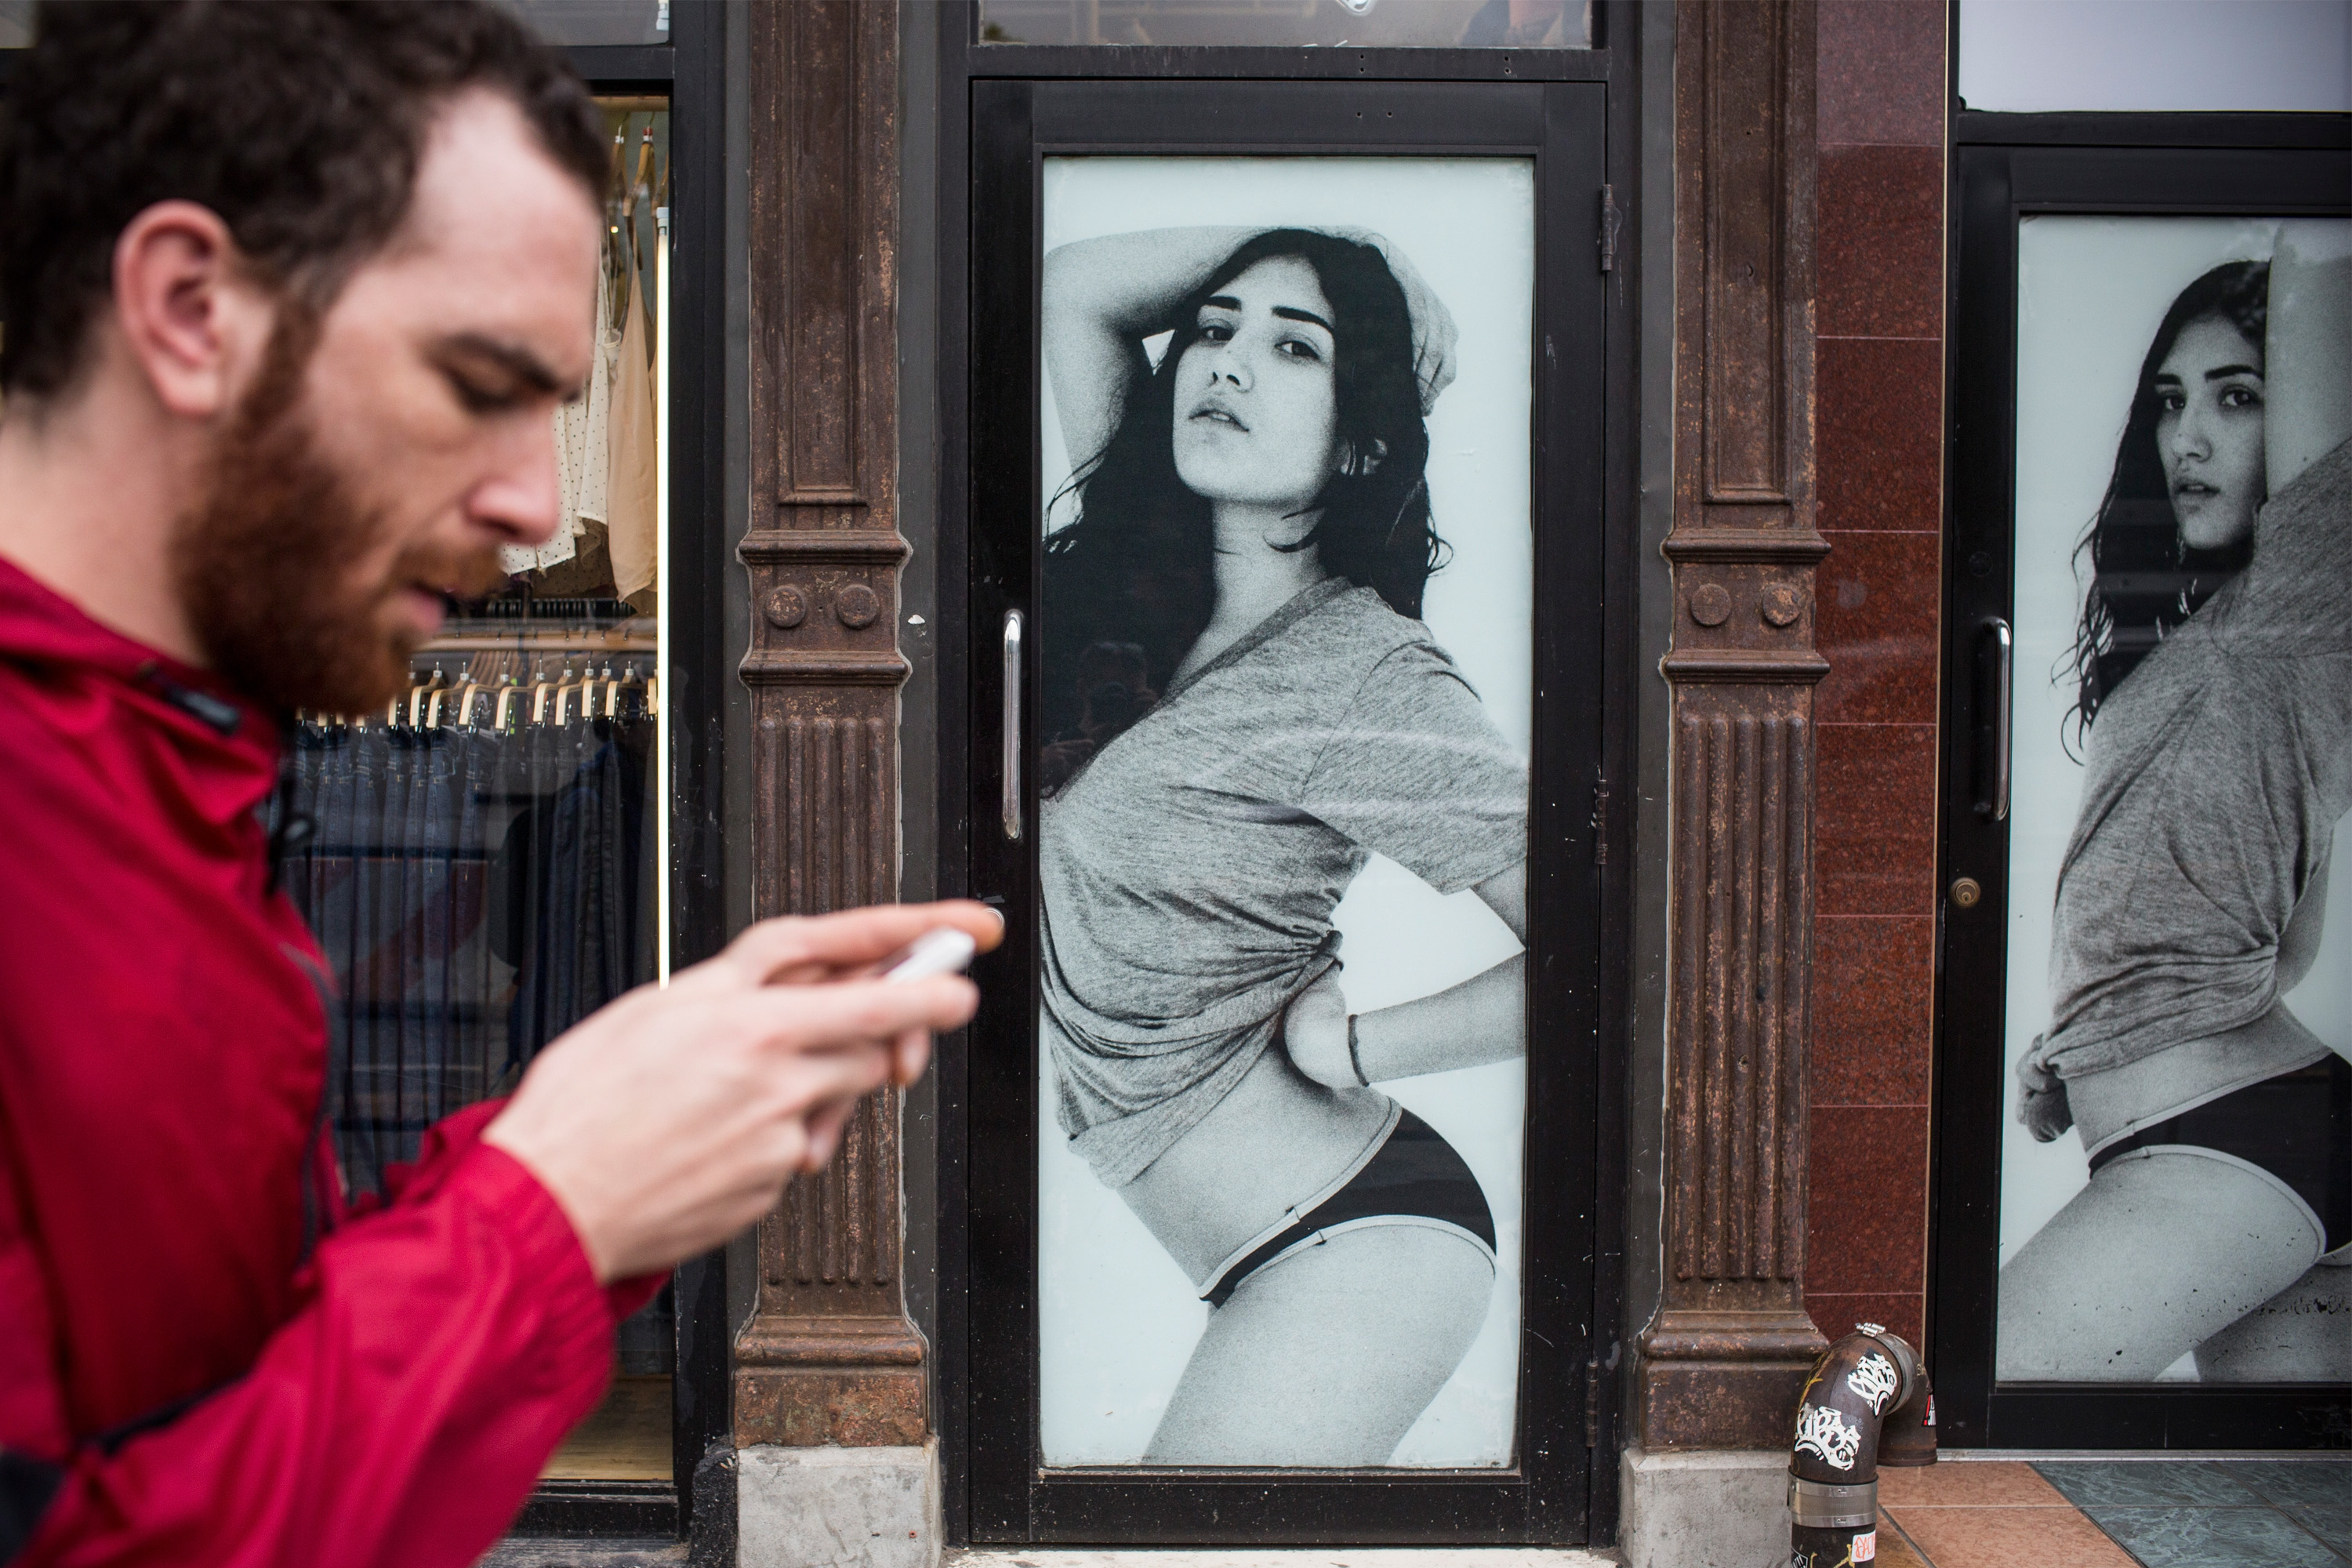 A man walks past an American Apparel store on June 19, 2014 in New York City.